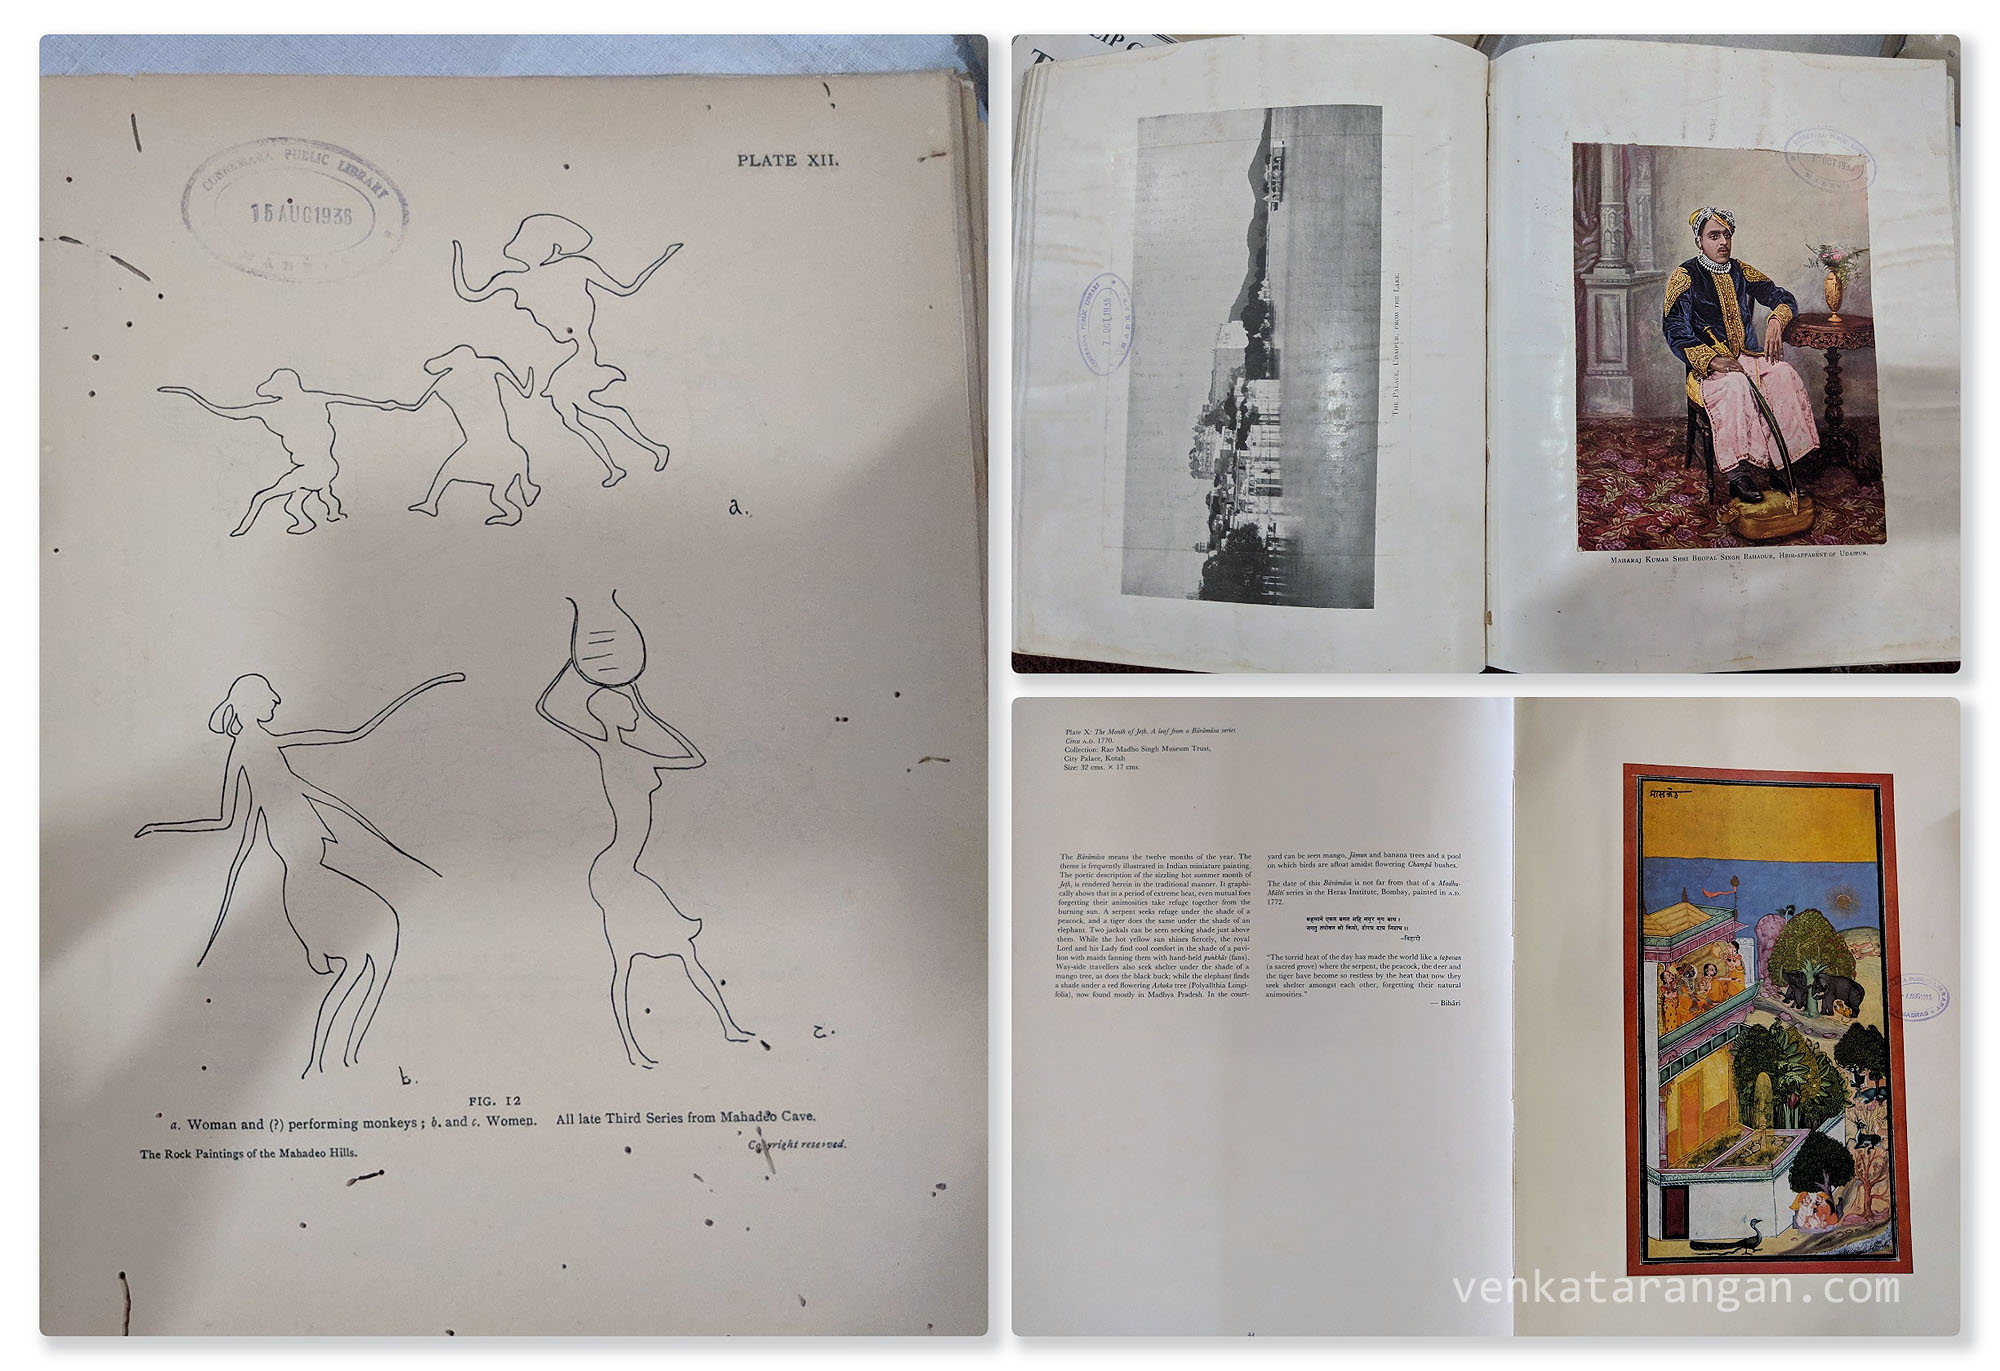 Page from The Rock Paintings of the Mahadeo Hills. Stanley Reed's Royal Tour in India 1906. The Udaipur Palace from the Lake, Picture of Maharaj Kumar Shri Bhopal Singh Bahadur in a book with library seal of 1935. A painting of The Month of Jeth, A leaf from a Baramasa Series from Rao Madho Singh Museum Trust, City Palace, Kotah